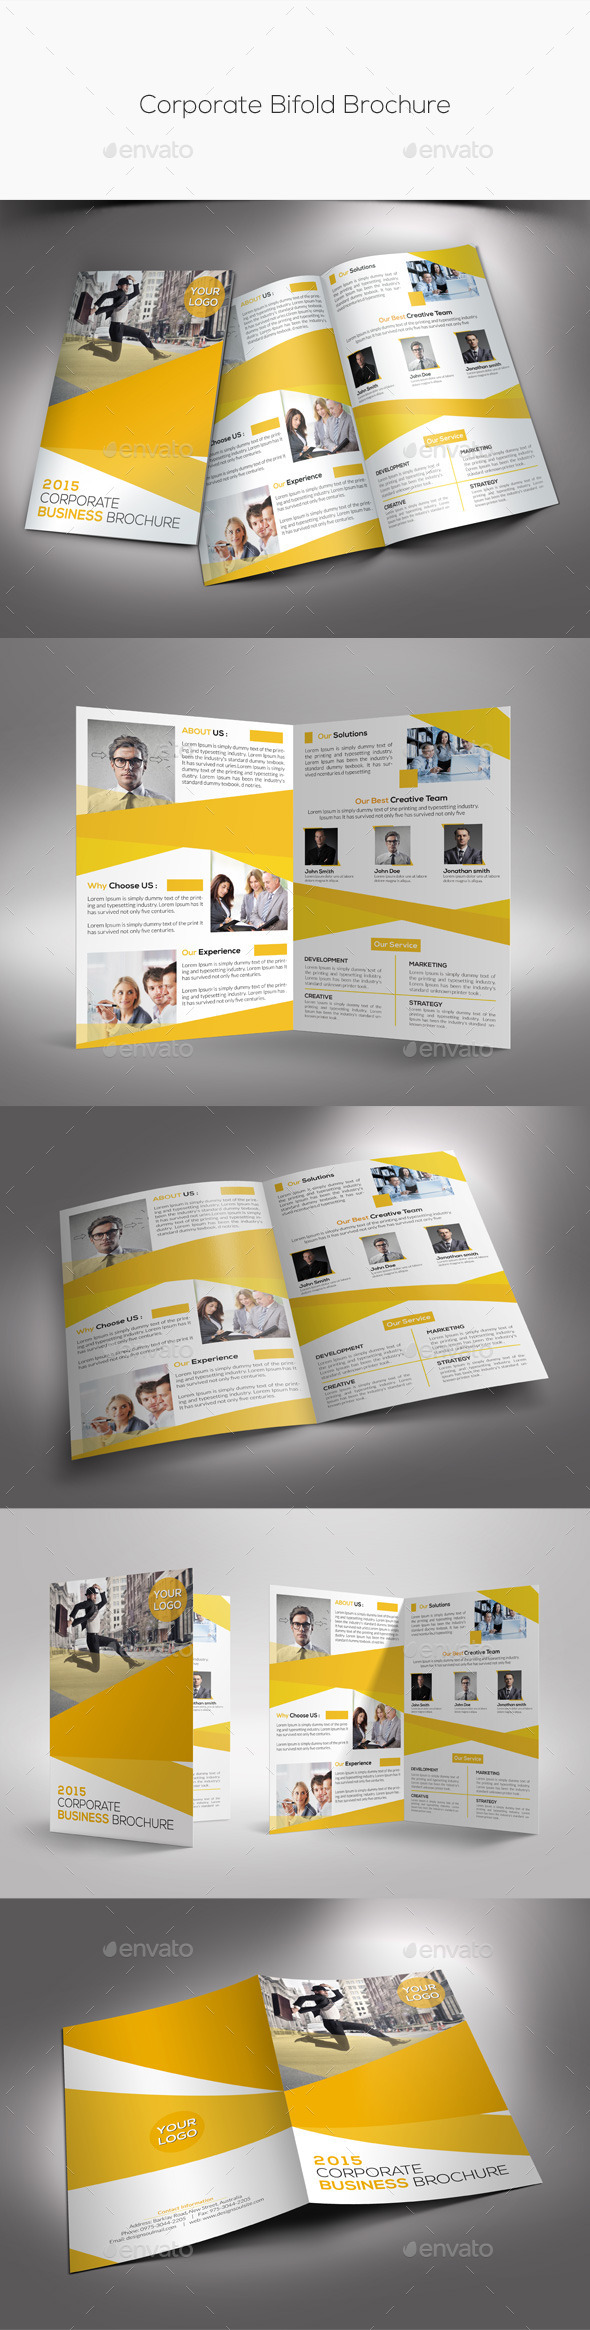 GraphicRiver Corporate Bifold Brochure 10427485